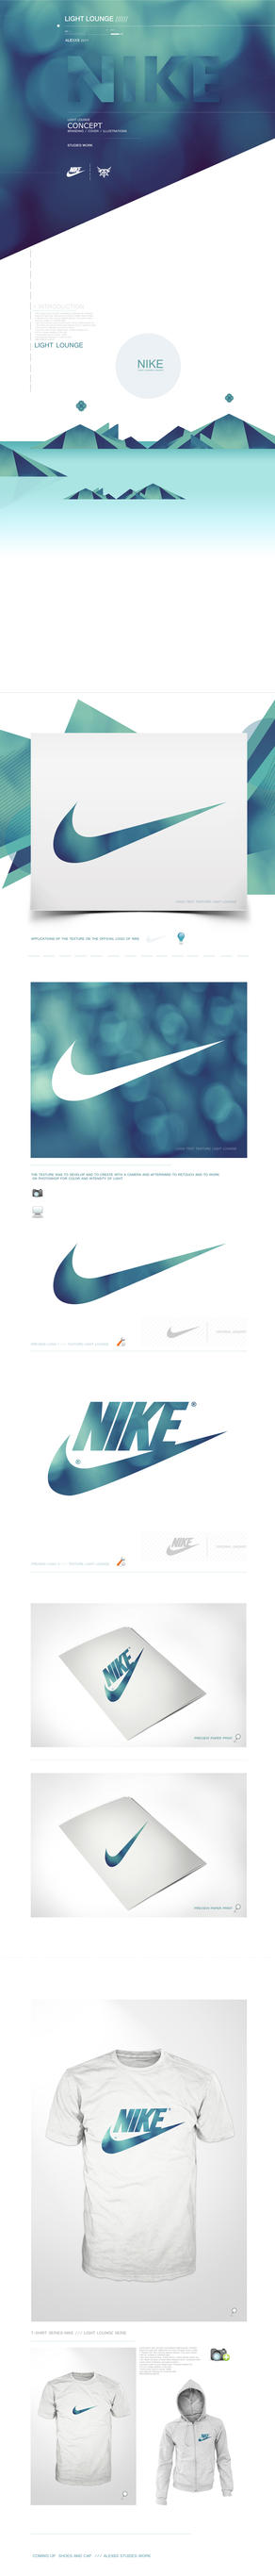 Nike Light Lounge by alex-xs